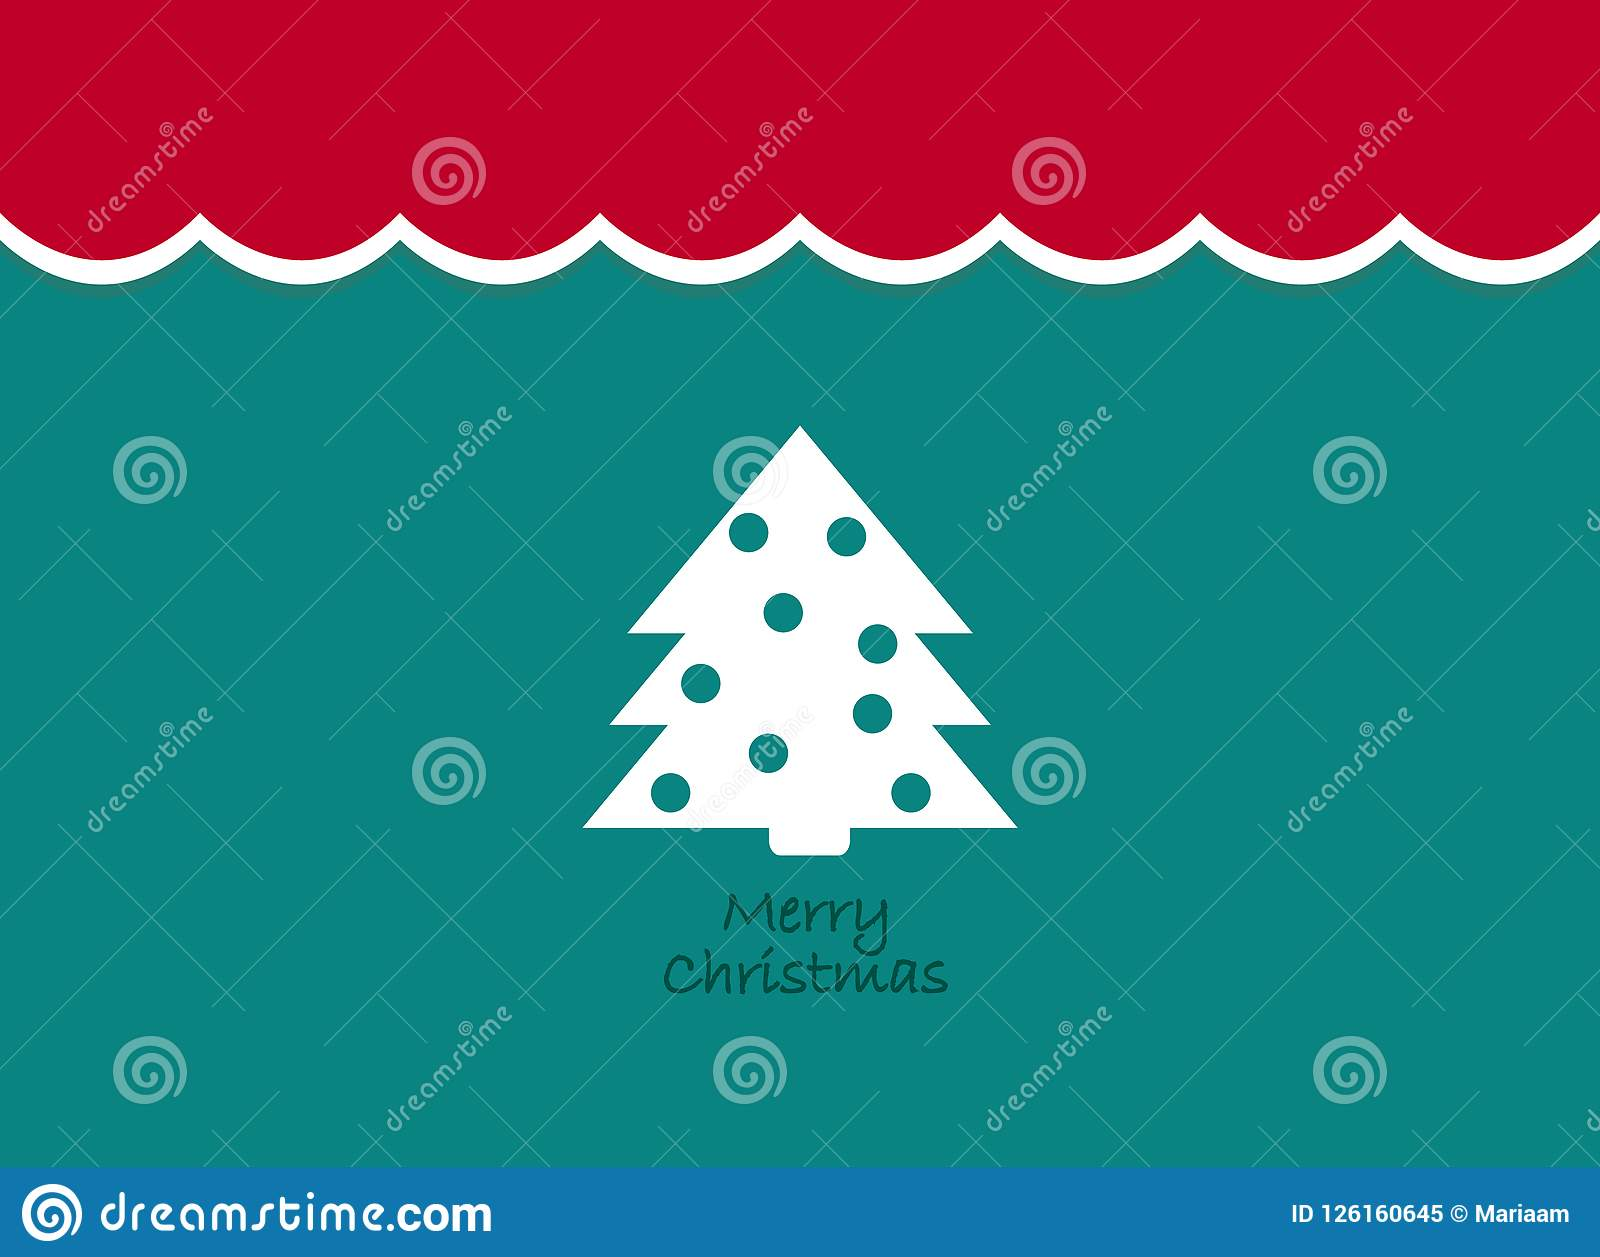 Merry Christmas Vintage background with tree. Retro flat design.